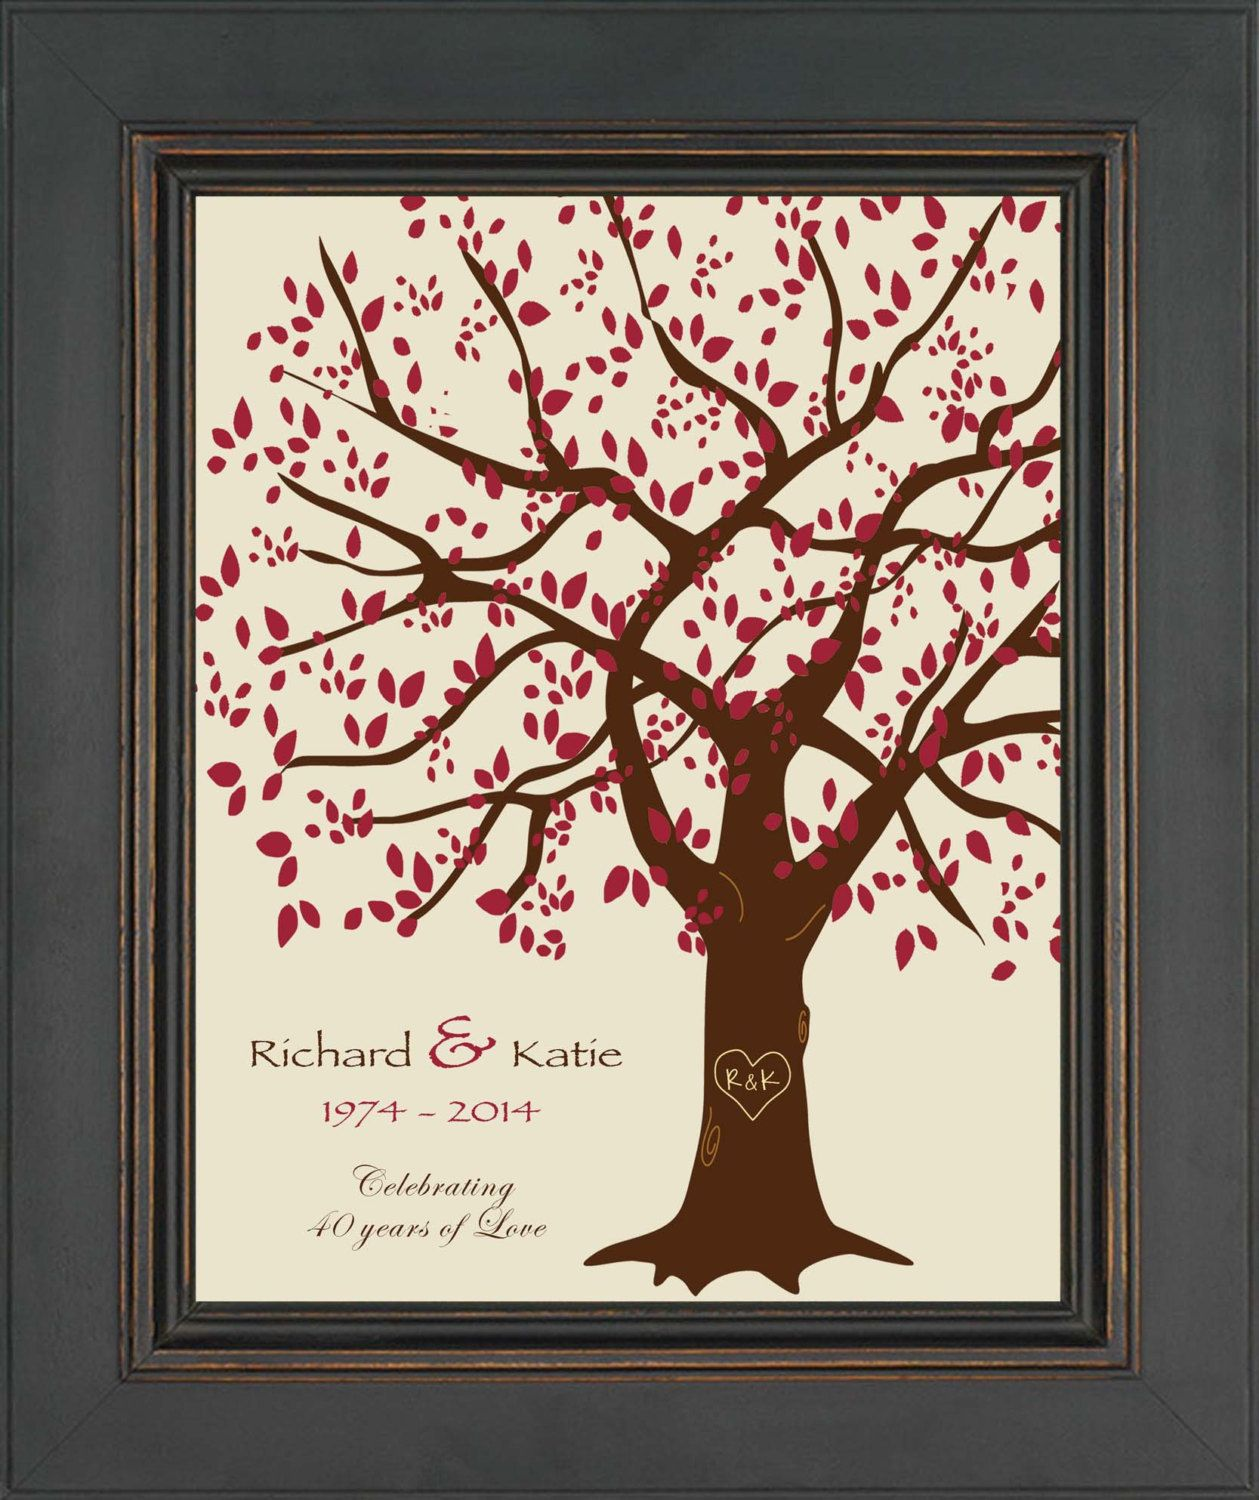 40th Wedding Anniversary Gifts For Parents Ideas: 40th Anniversary Gift For Parents 40th Ruby By